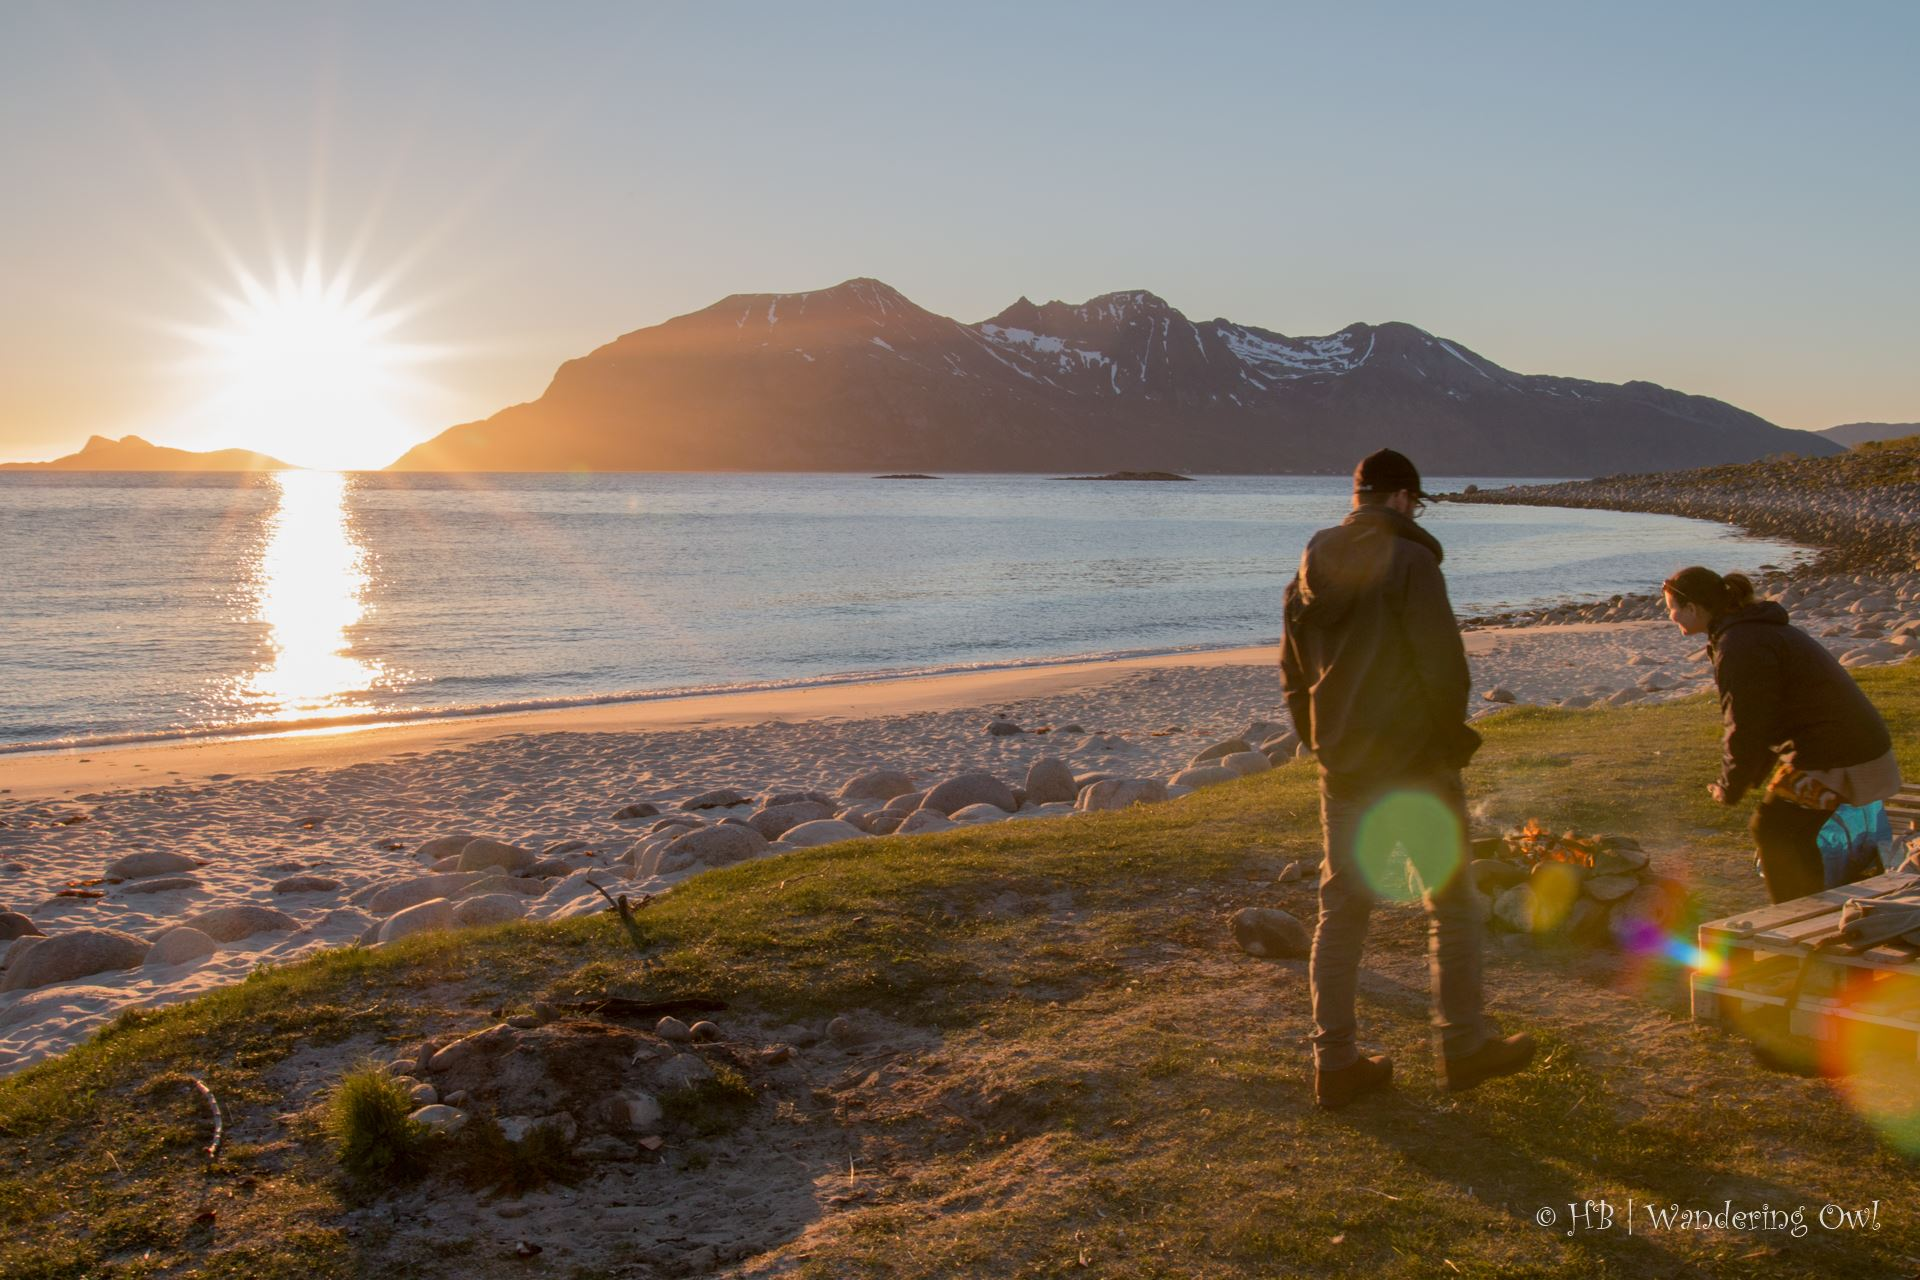 Summer Night Campfire – a Fjord Tour with Dinner and Photography - Wandering Owl